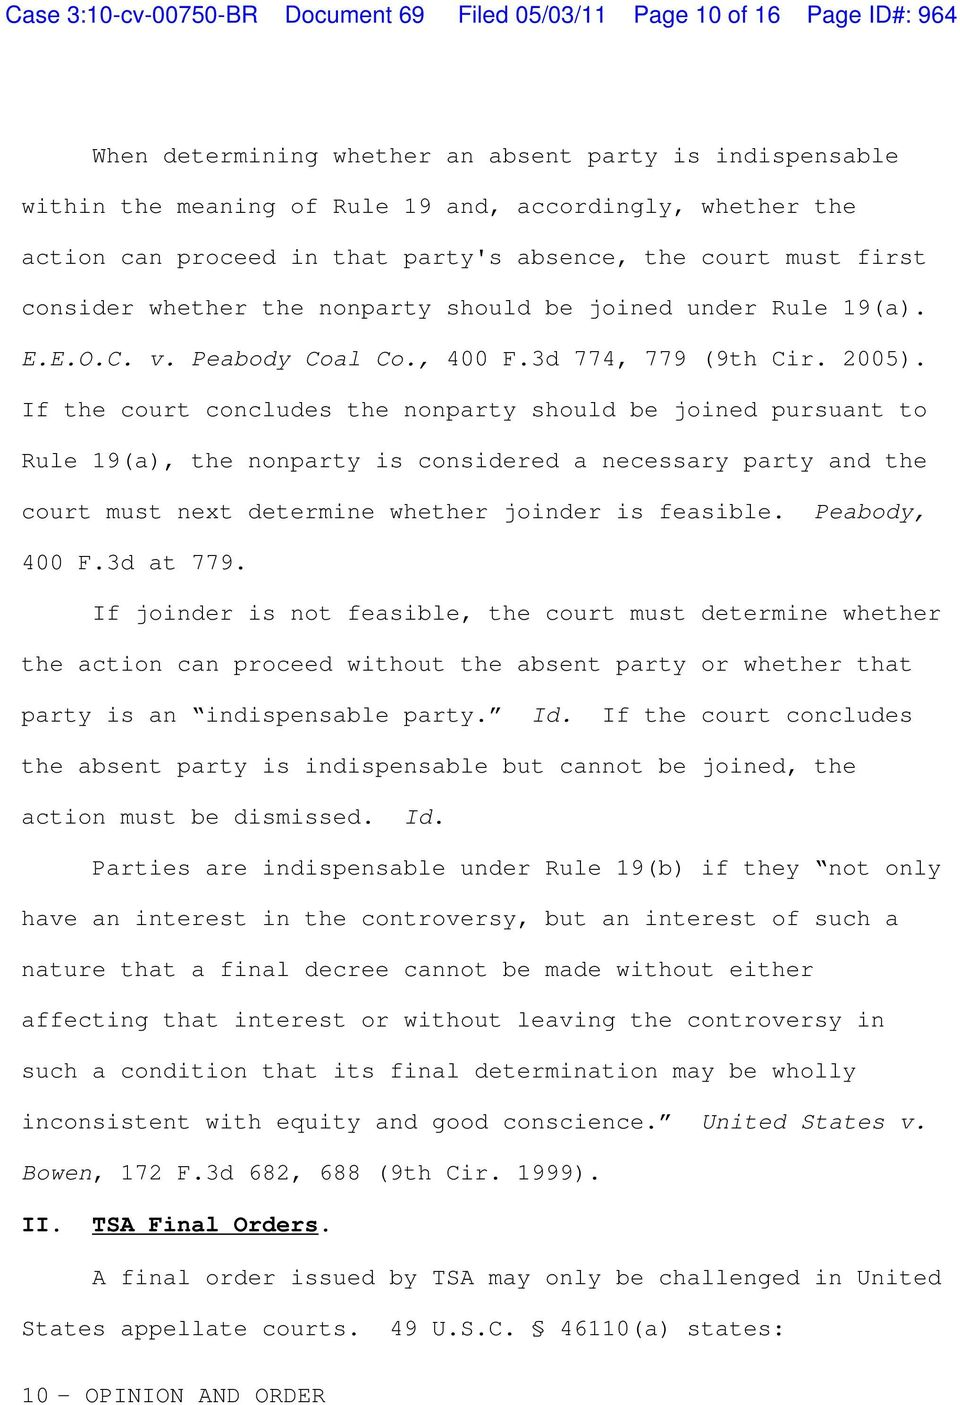 If the court concludes the nonparty should be joined pursuant to Rule 19(a), the nonparty is considered a necessary party and the court must next determine whether joinder is feasible. Peabody, 400 F.